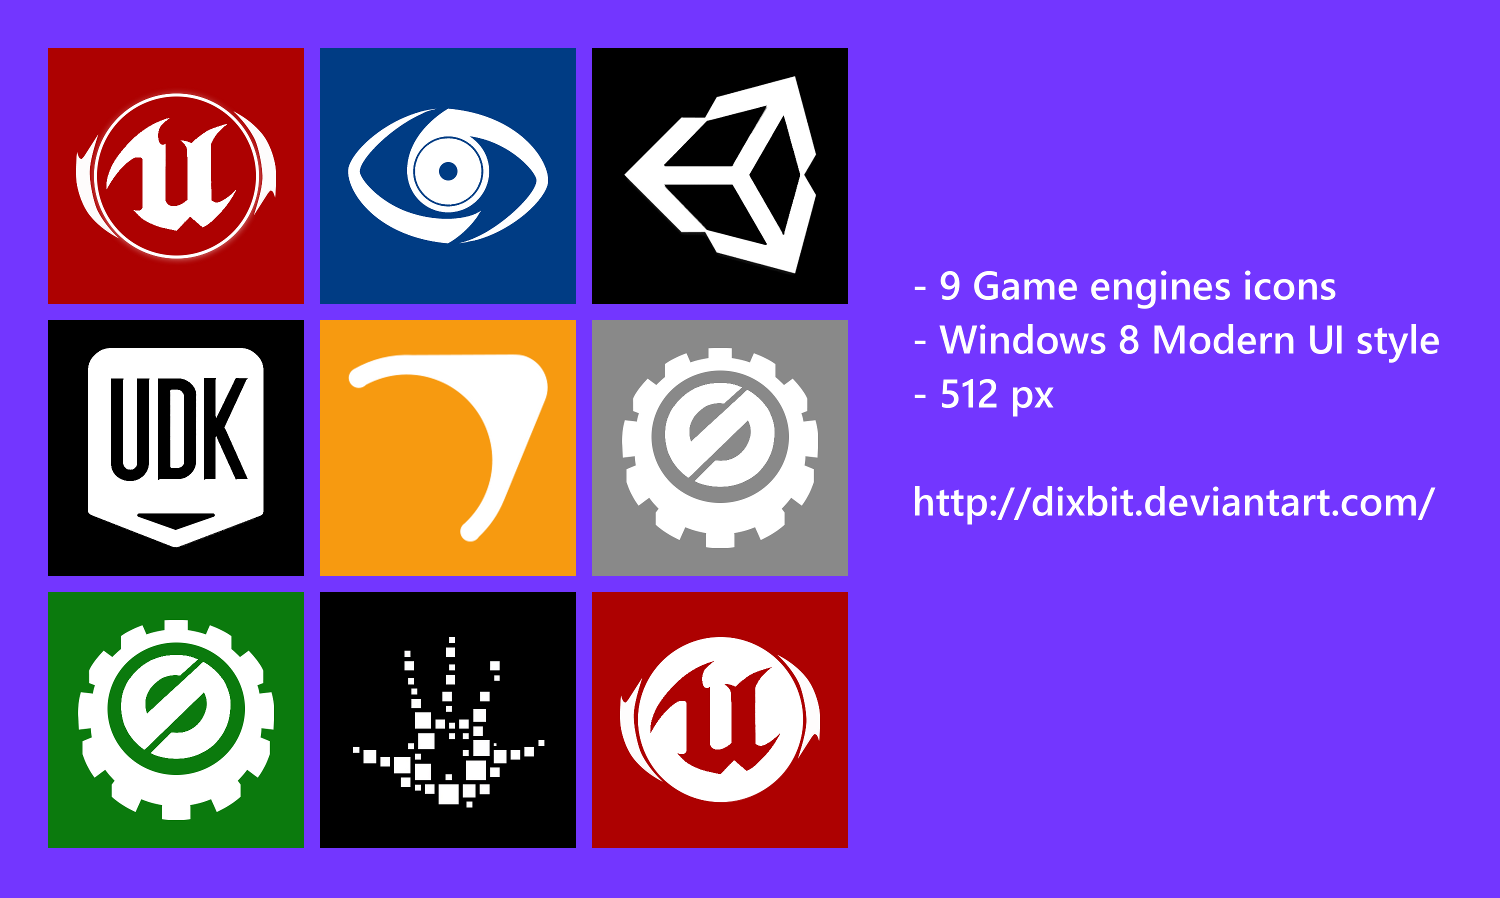 Game engines Modern UI Icon pack by Dixbit on DeviantArt